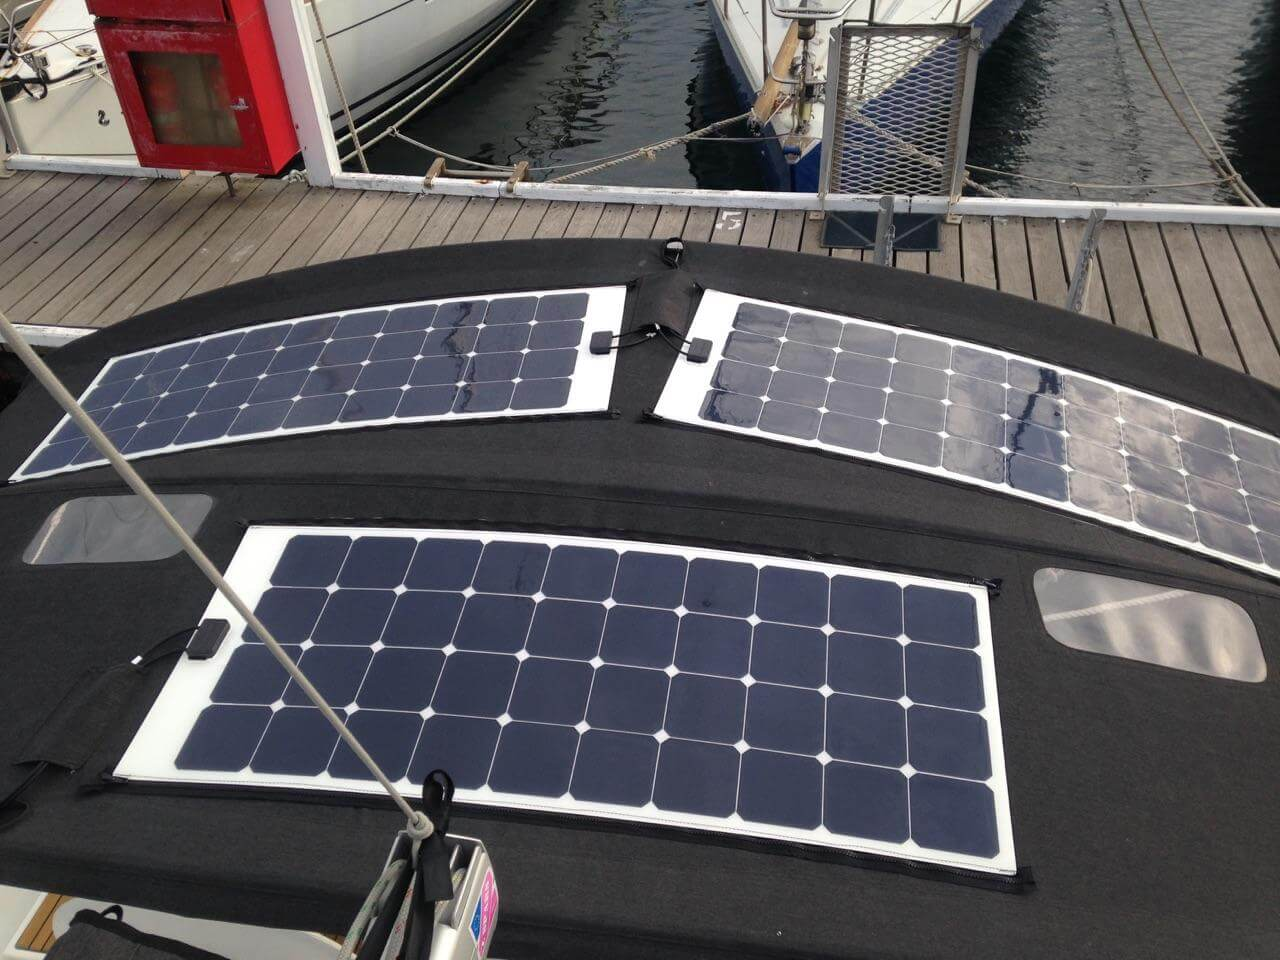 Yacht bimini with RADpower flexible solar panels